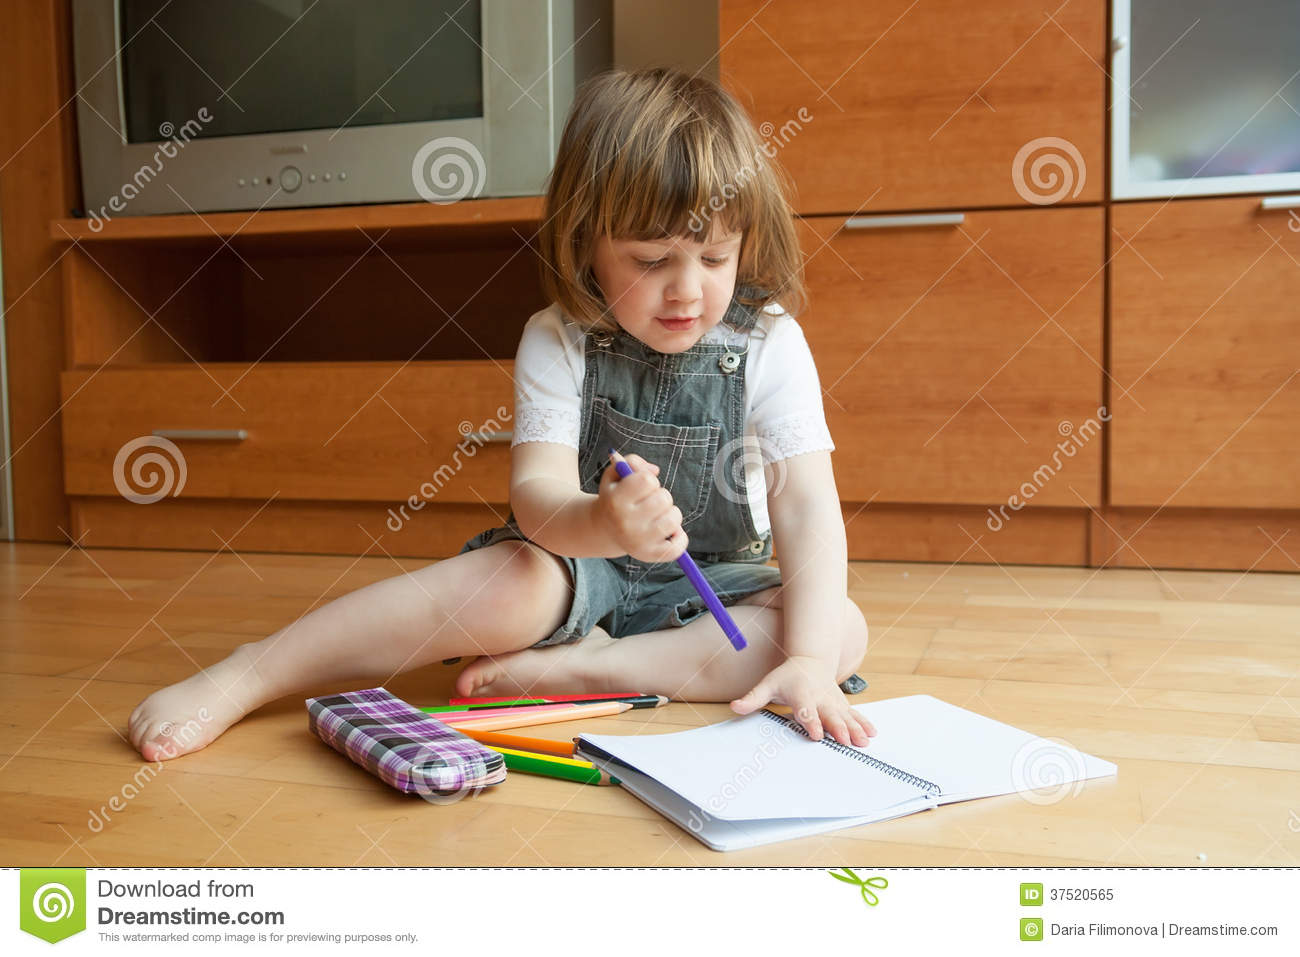 Little girl draws while sitting